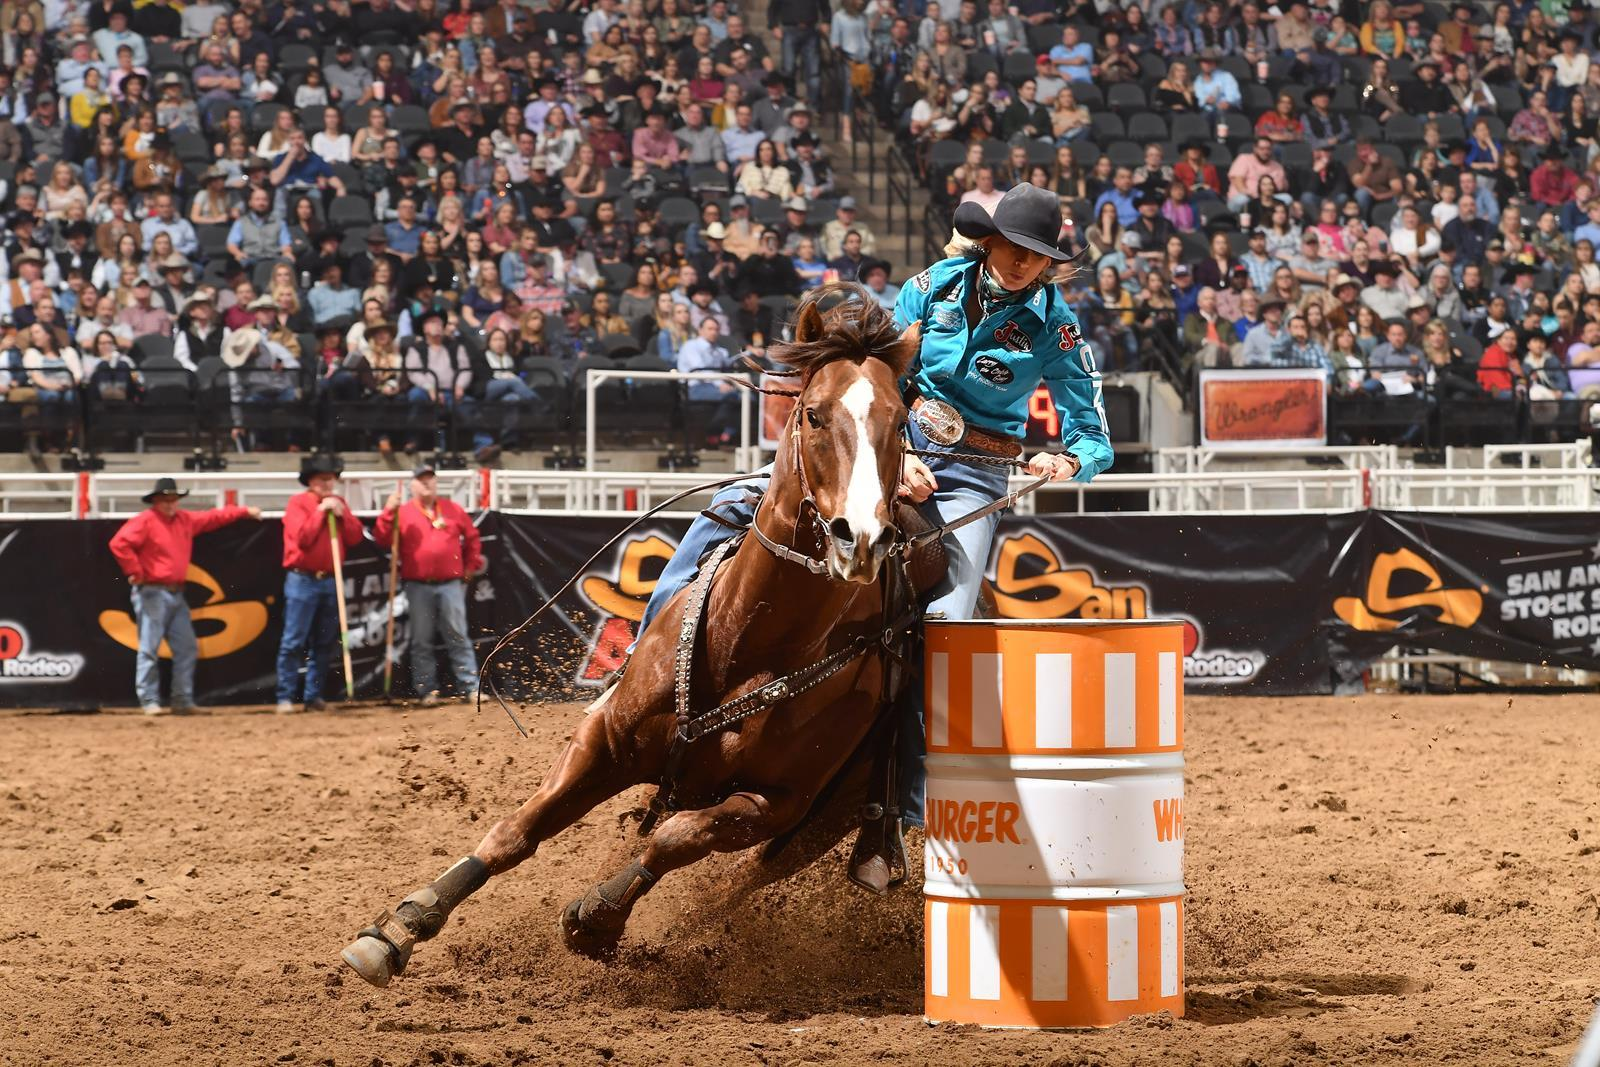 Barrel Racer Shali Lord competes at the San Antonio Stock Show & Rodeo